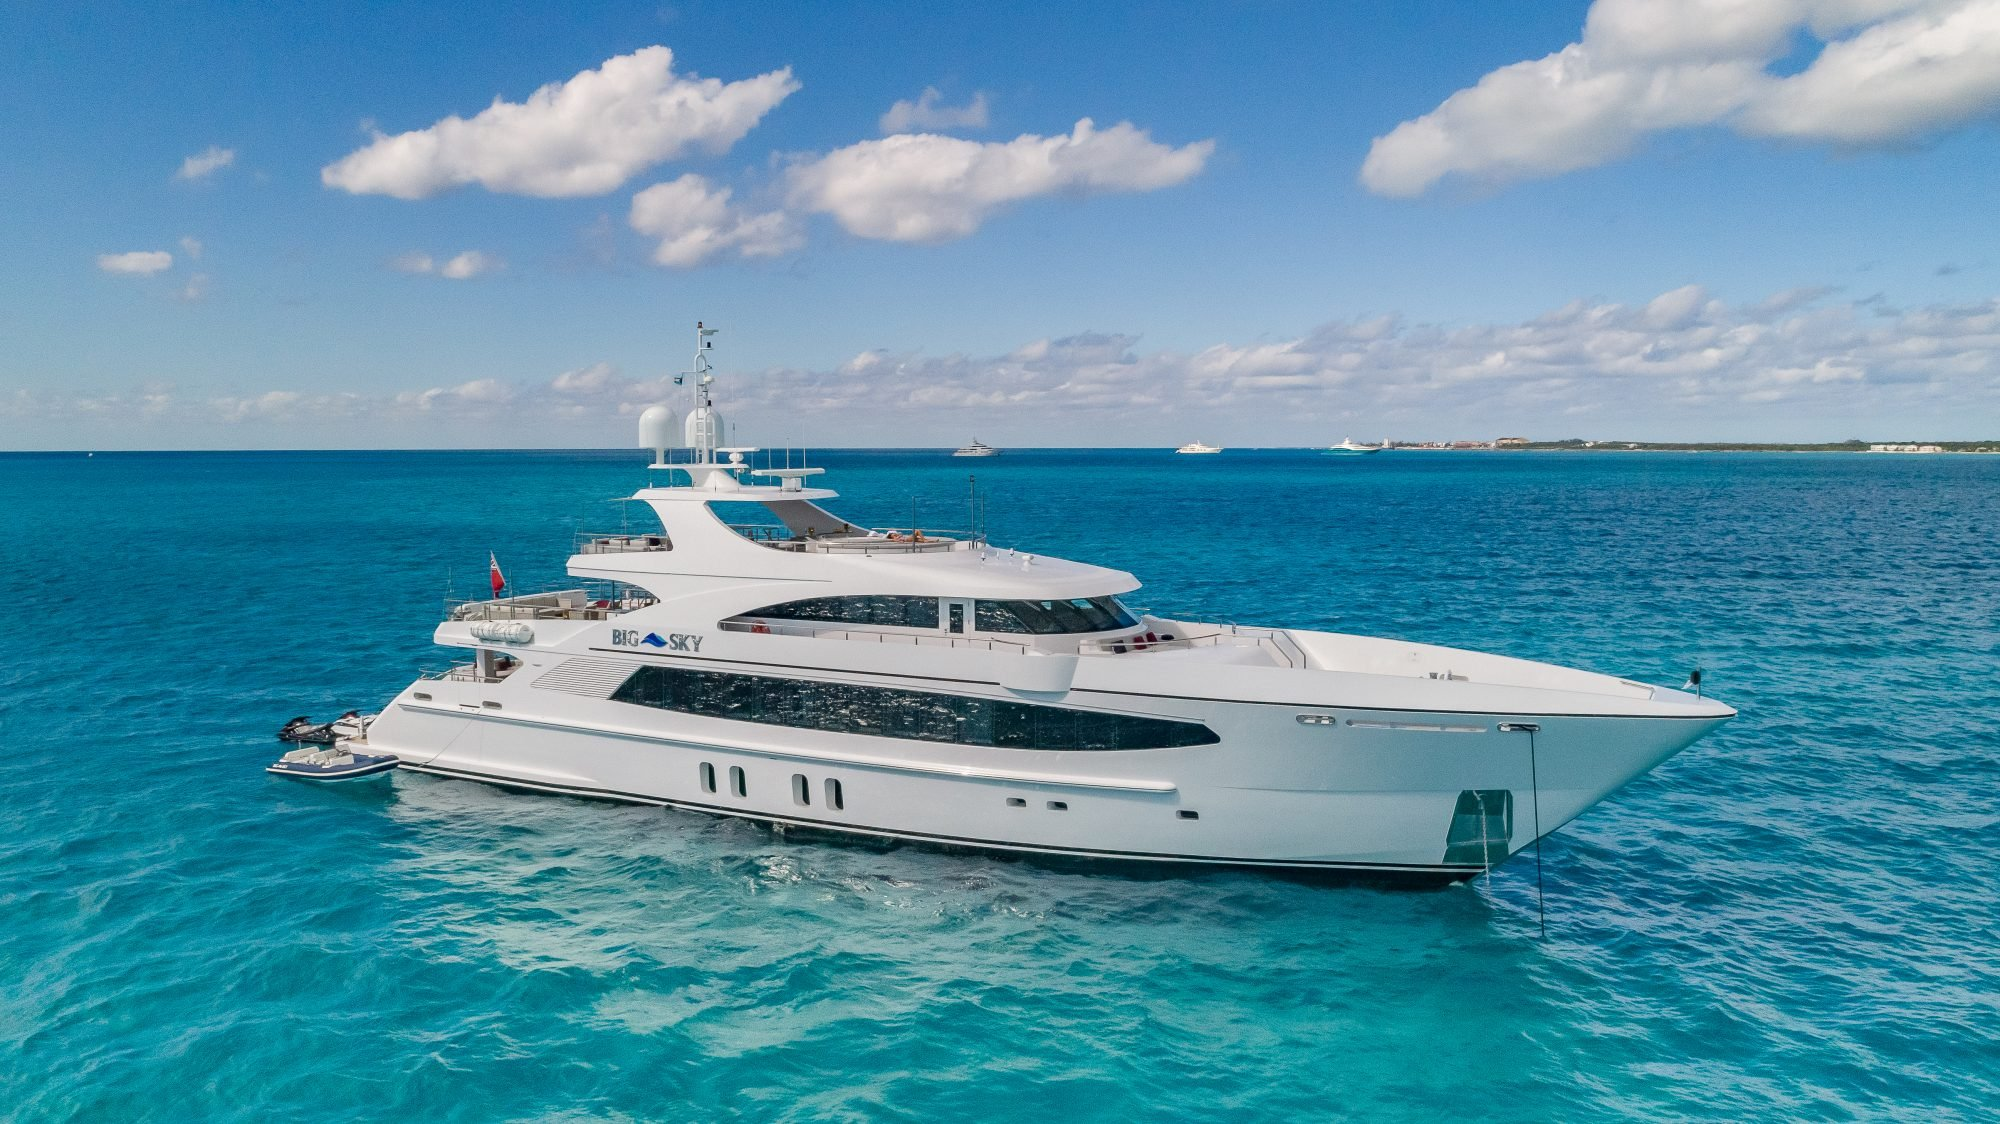 BIG SKY Yacht for Charter